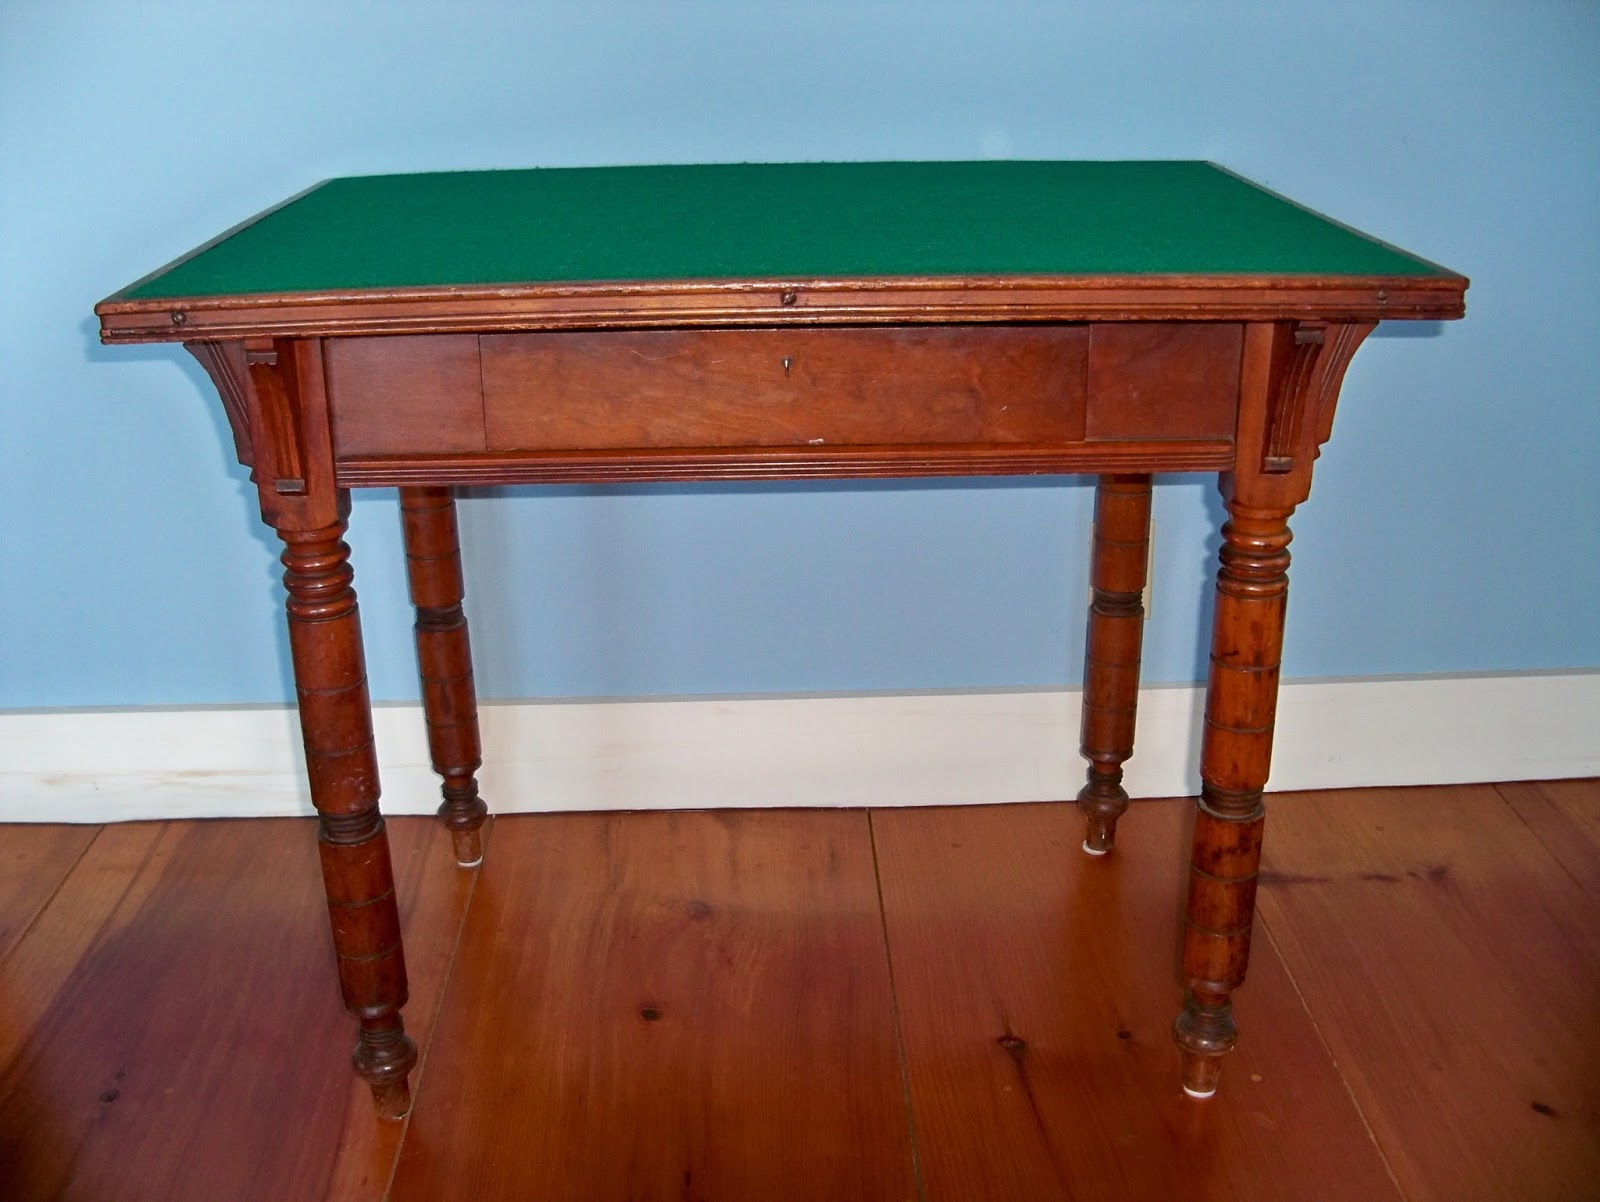 Lovely Old Game Table With Turned Legs And Felt Top Hand Cut Dove Tailed Drawer